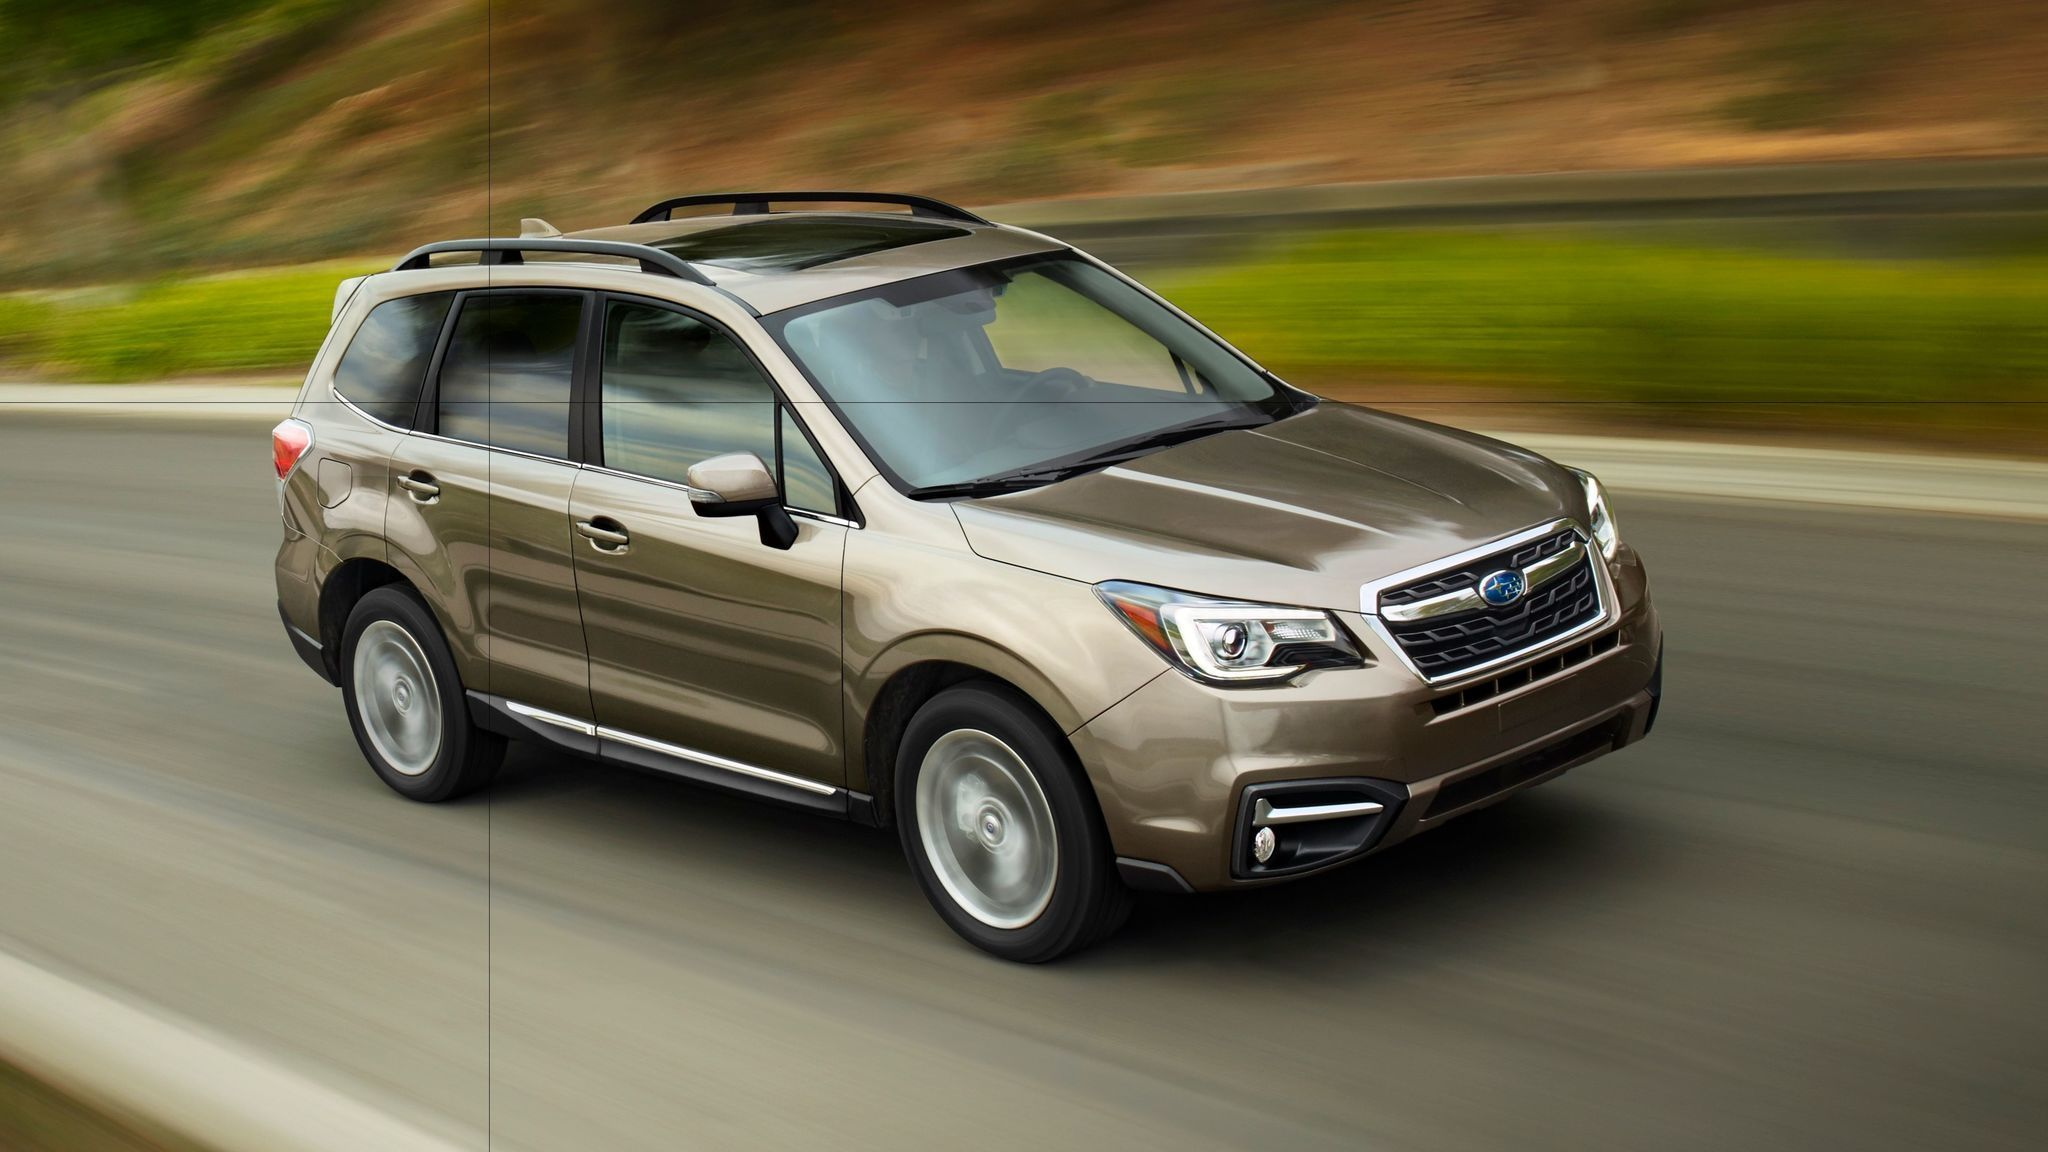 2017 Subaru Forester Simple refined and sensible The San Diego